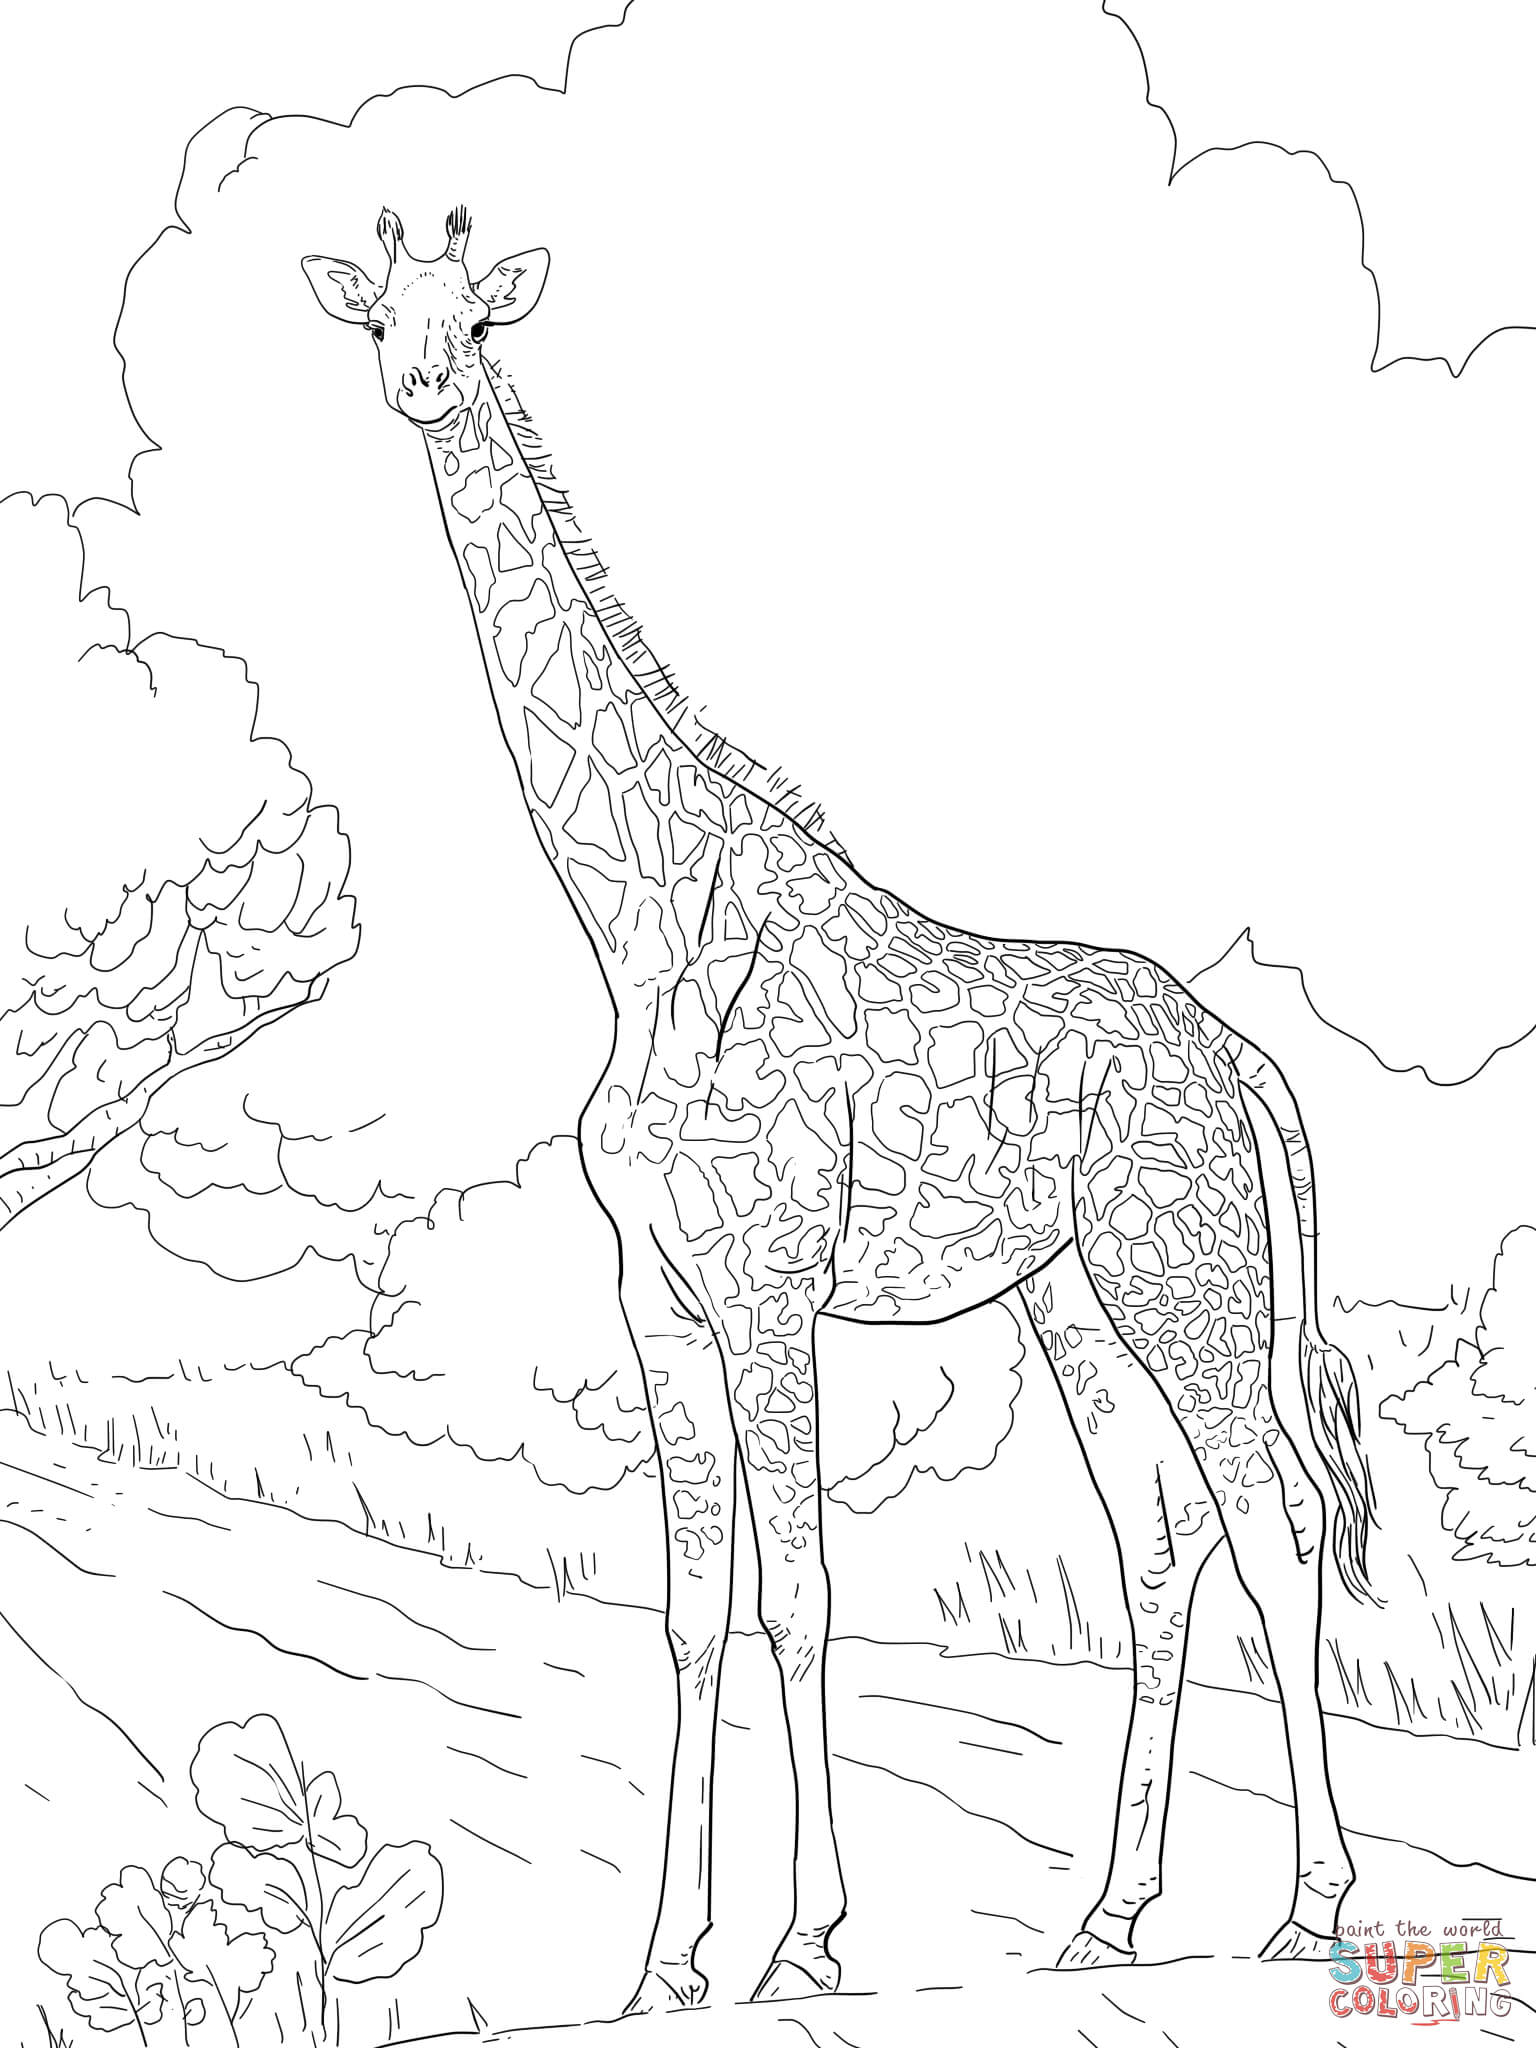 female masai giraffe coloring page free printable coloring pages